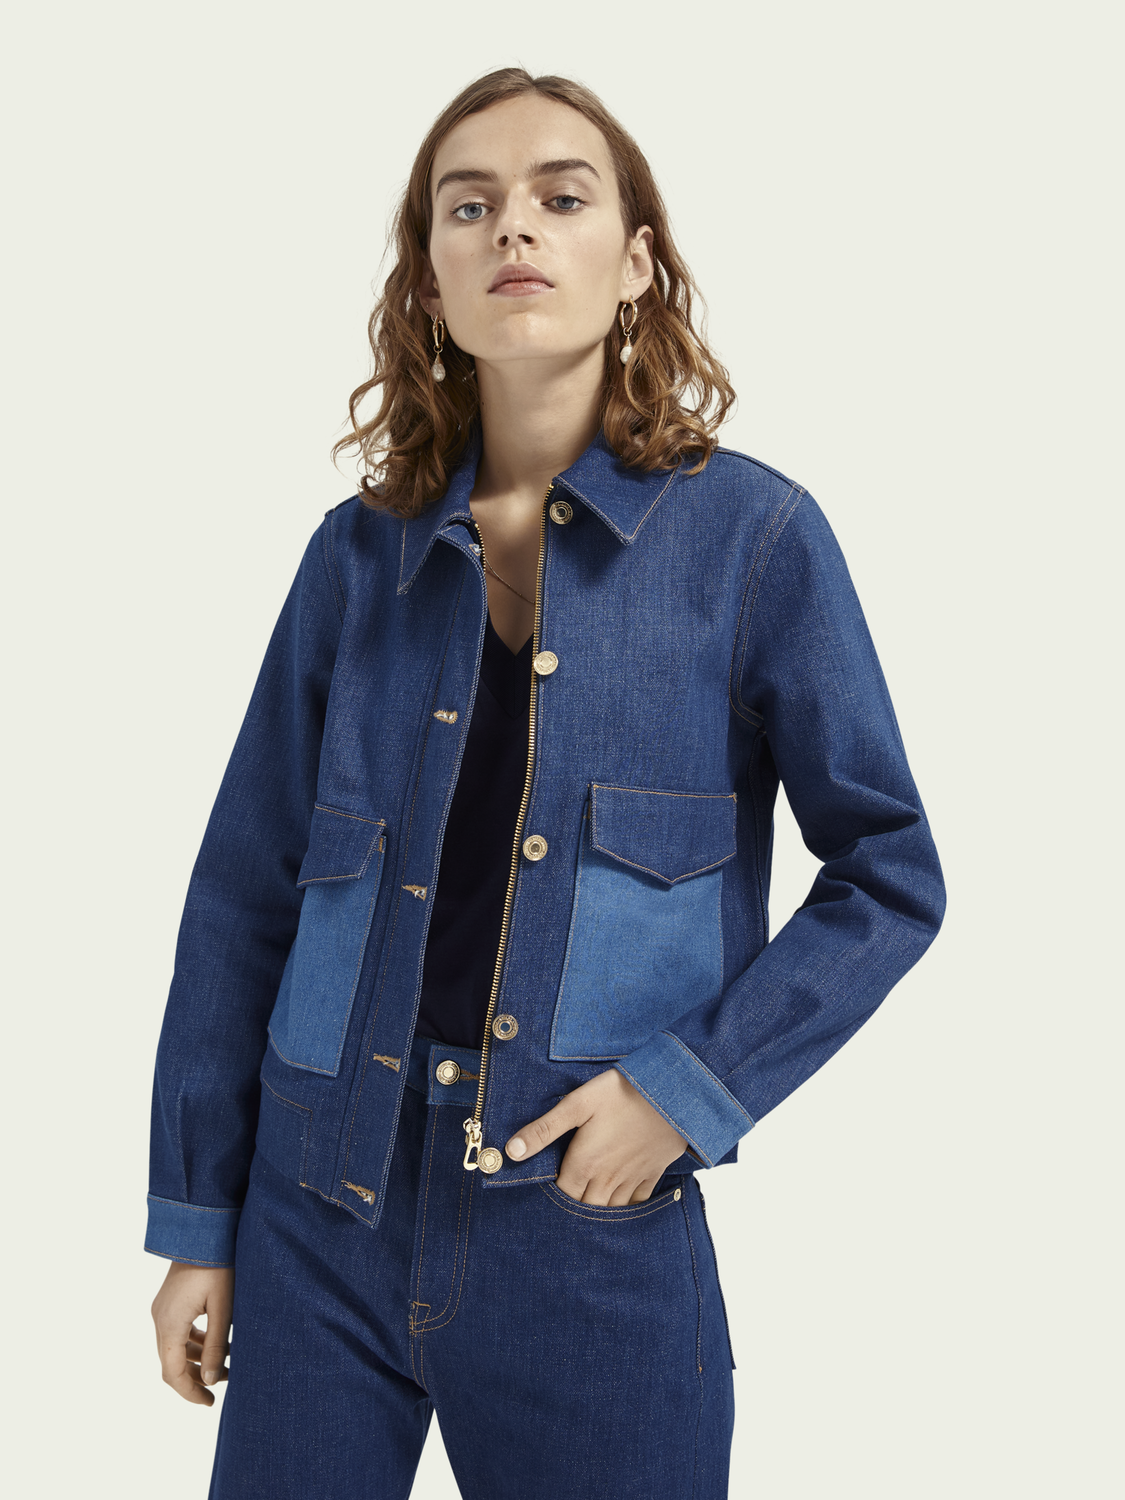 Women Two-tone denim jacket - Dress For Adventure